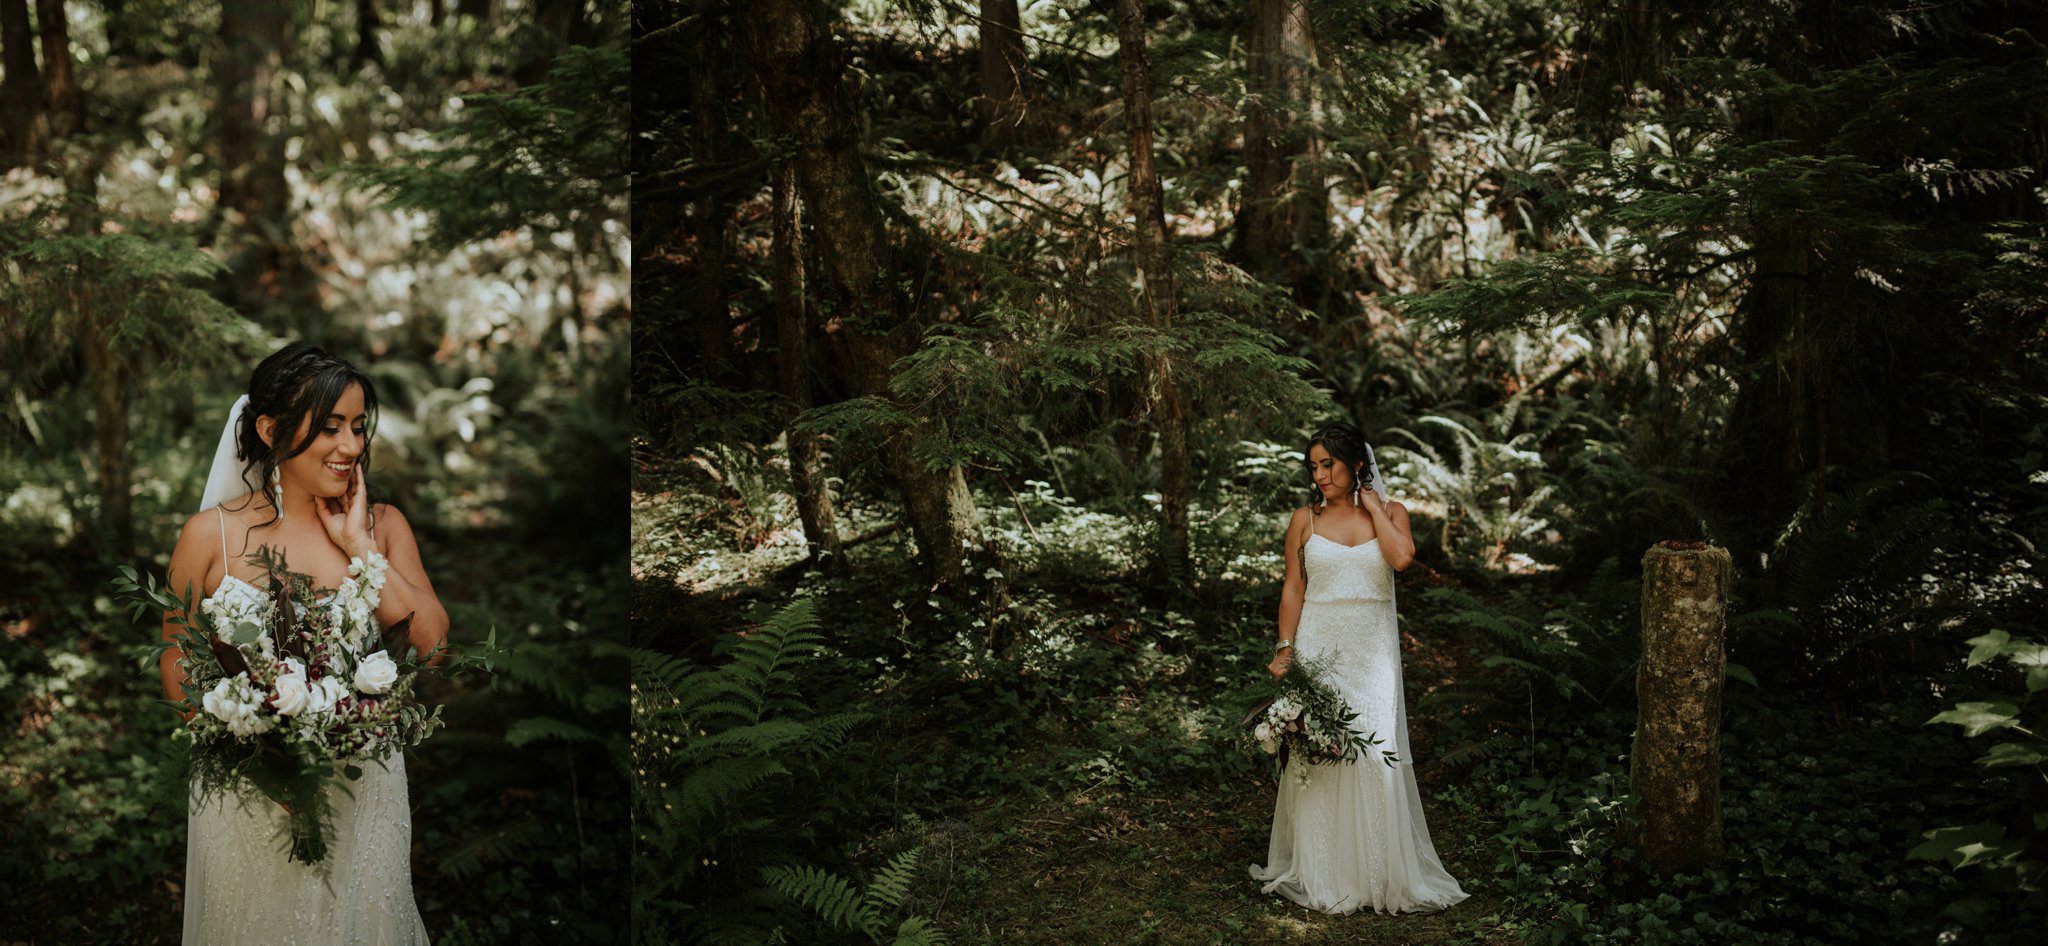 intimate-boho-campfire-wedding-shangri-la-on-the-green-seattle-wedding-photographer-caitlyn-nikula-photography-31.jpg